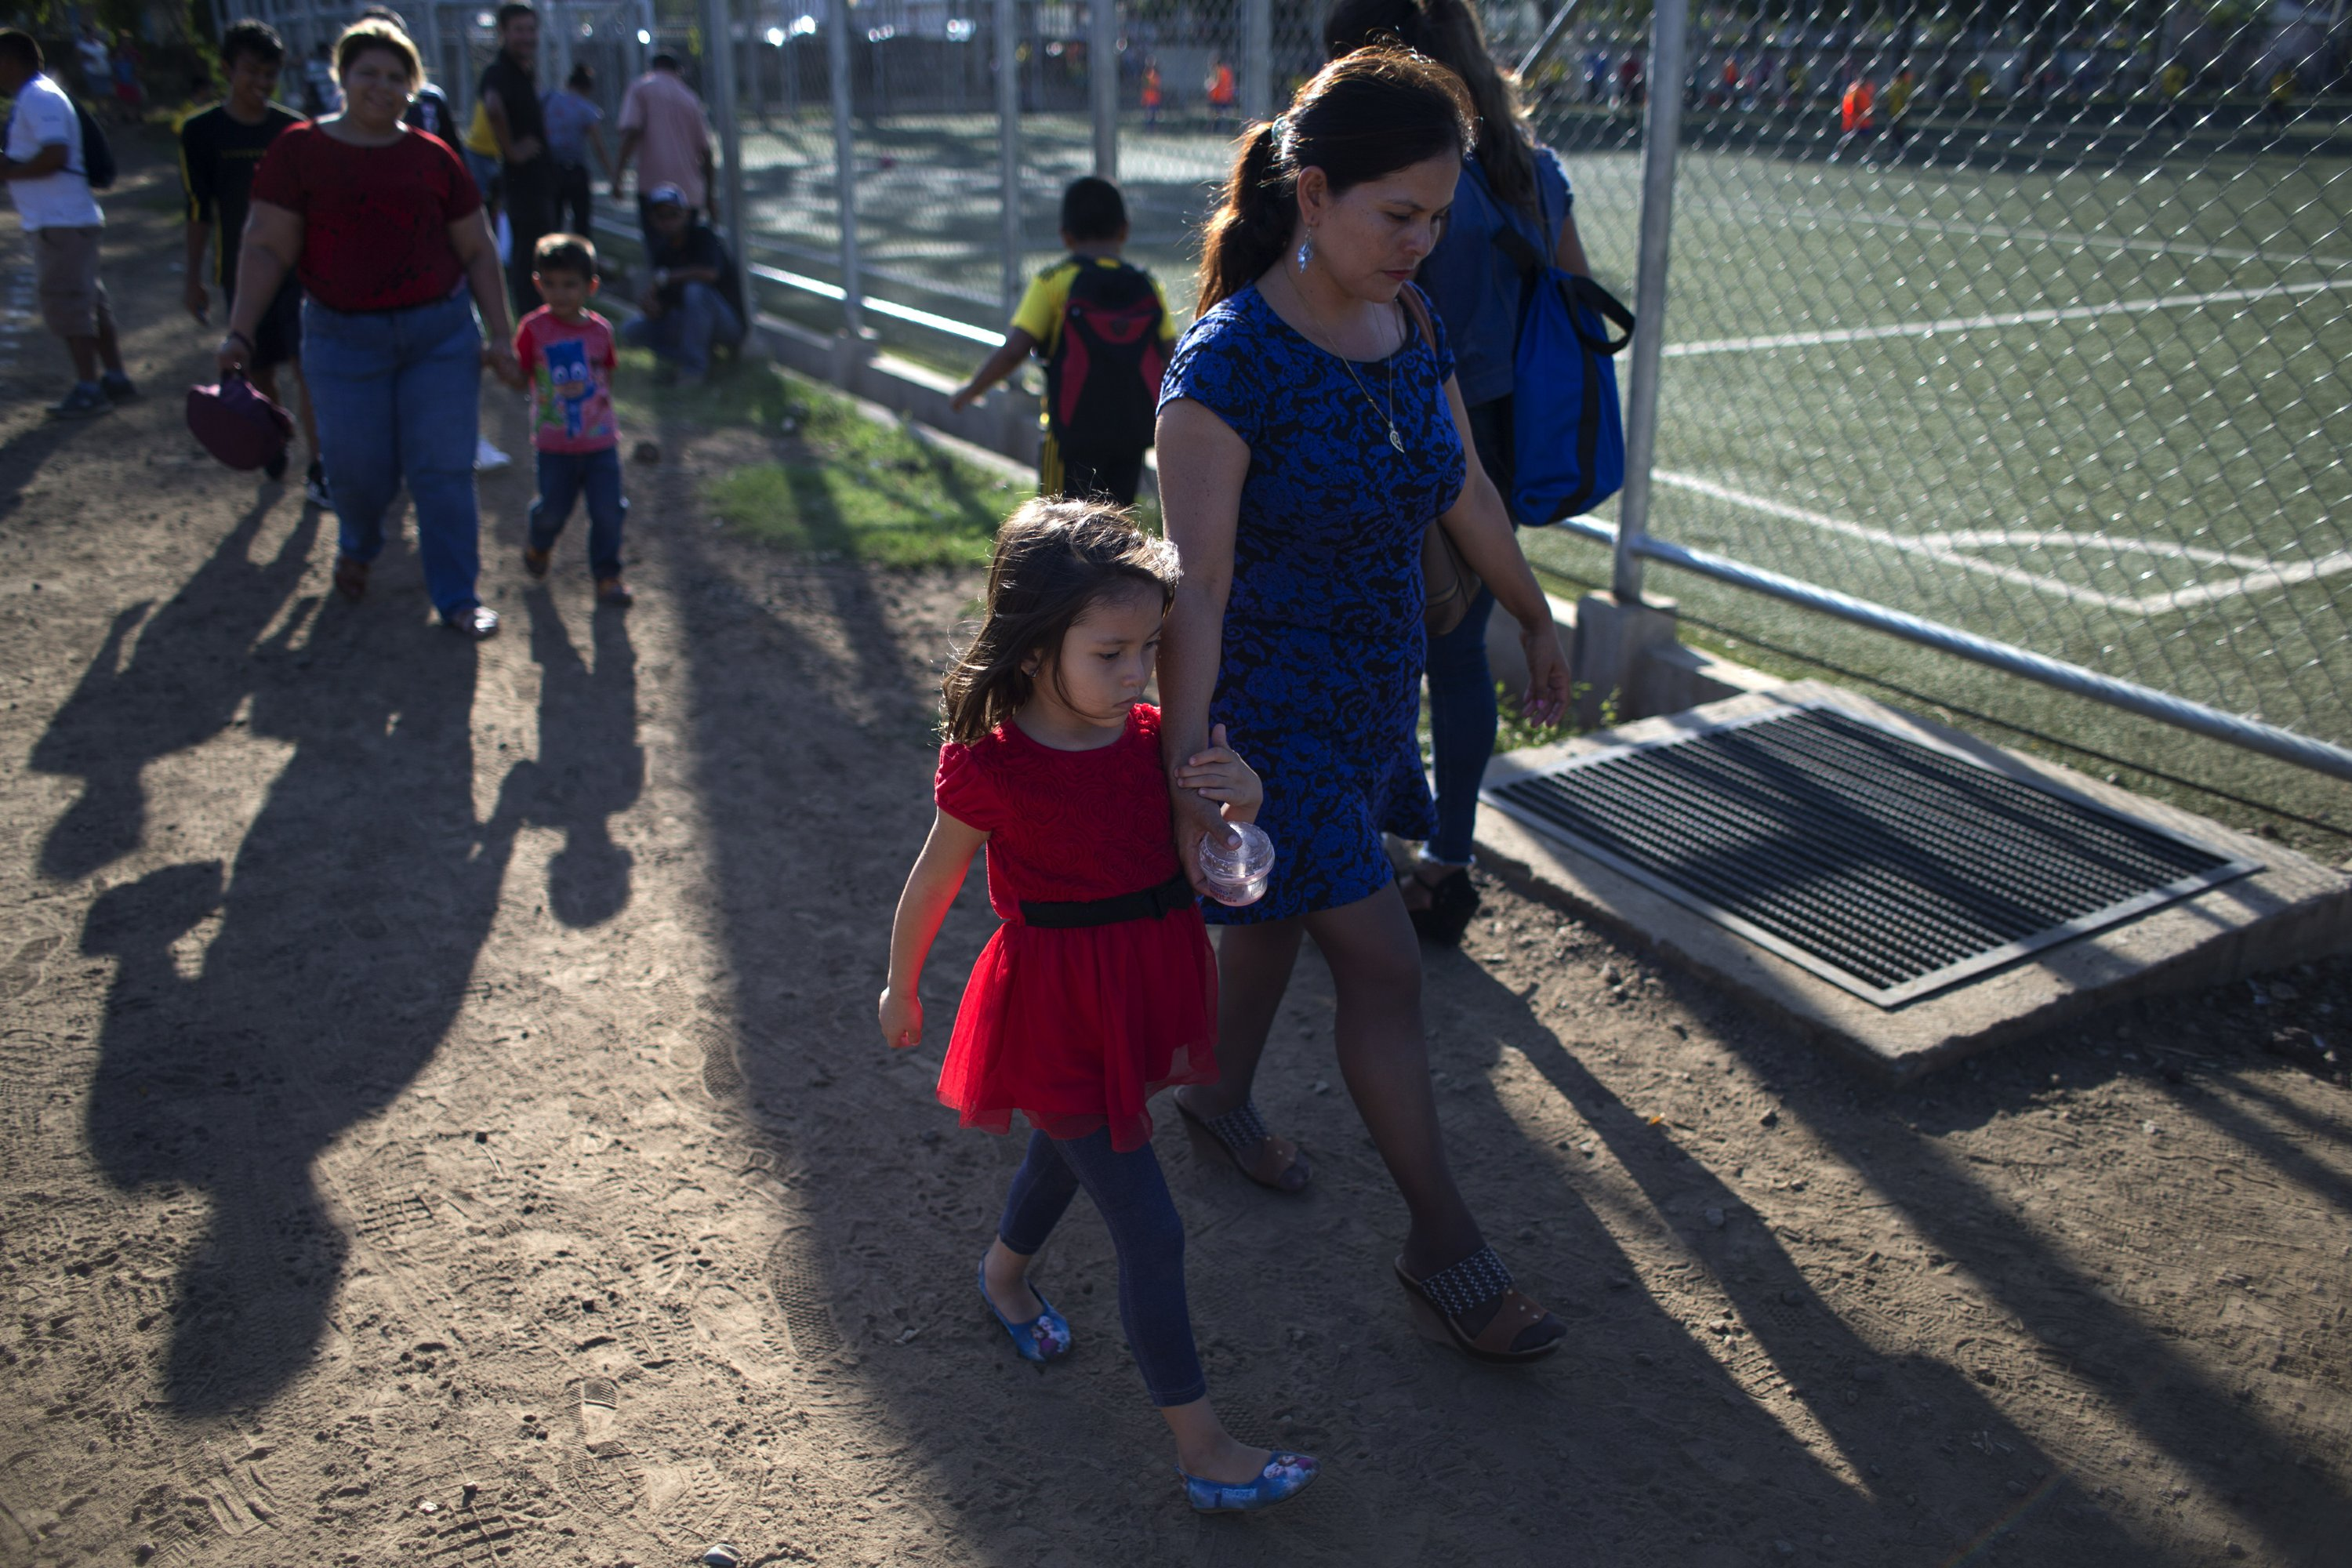 AP Investigation: Deported parents may lose kids to adoption